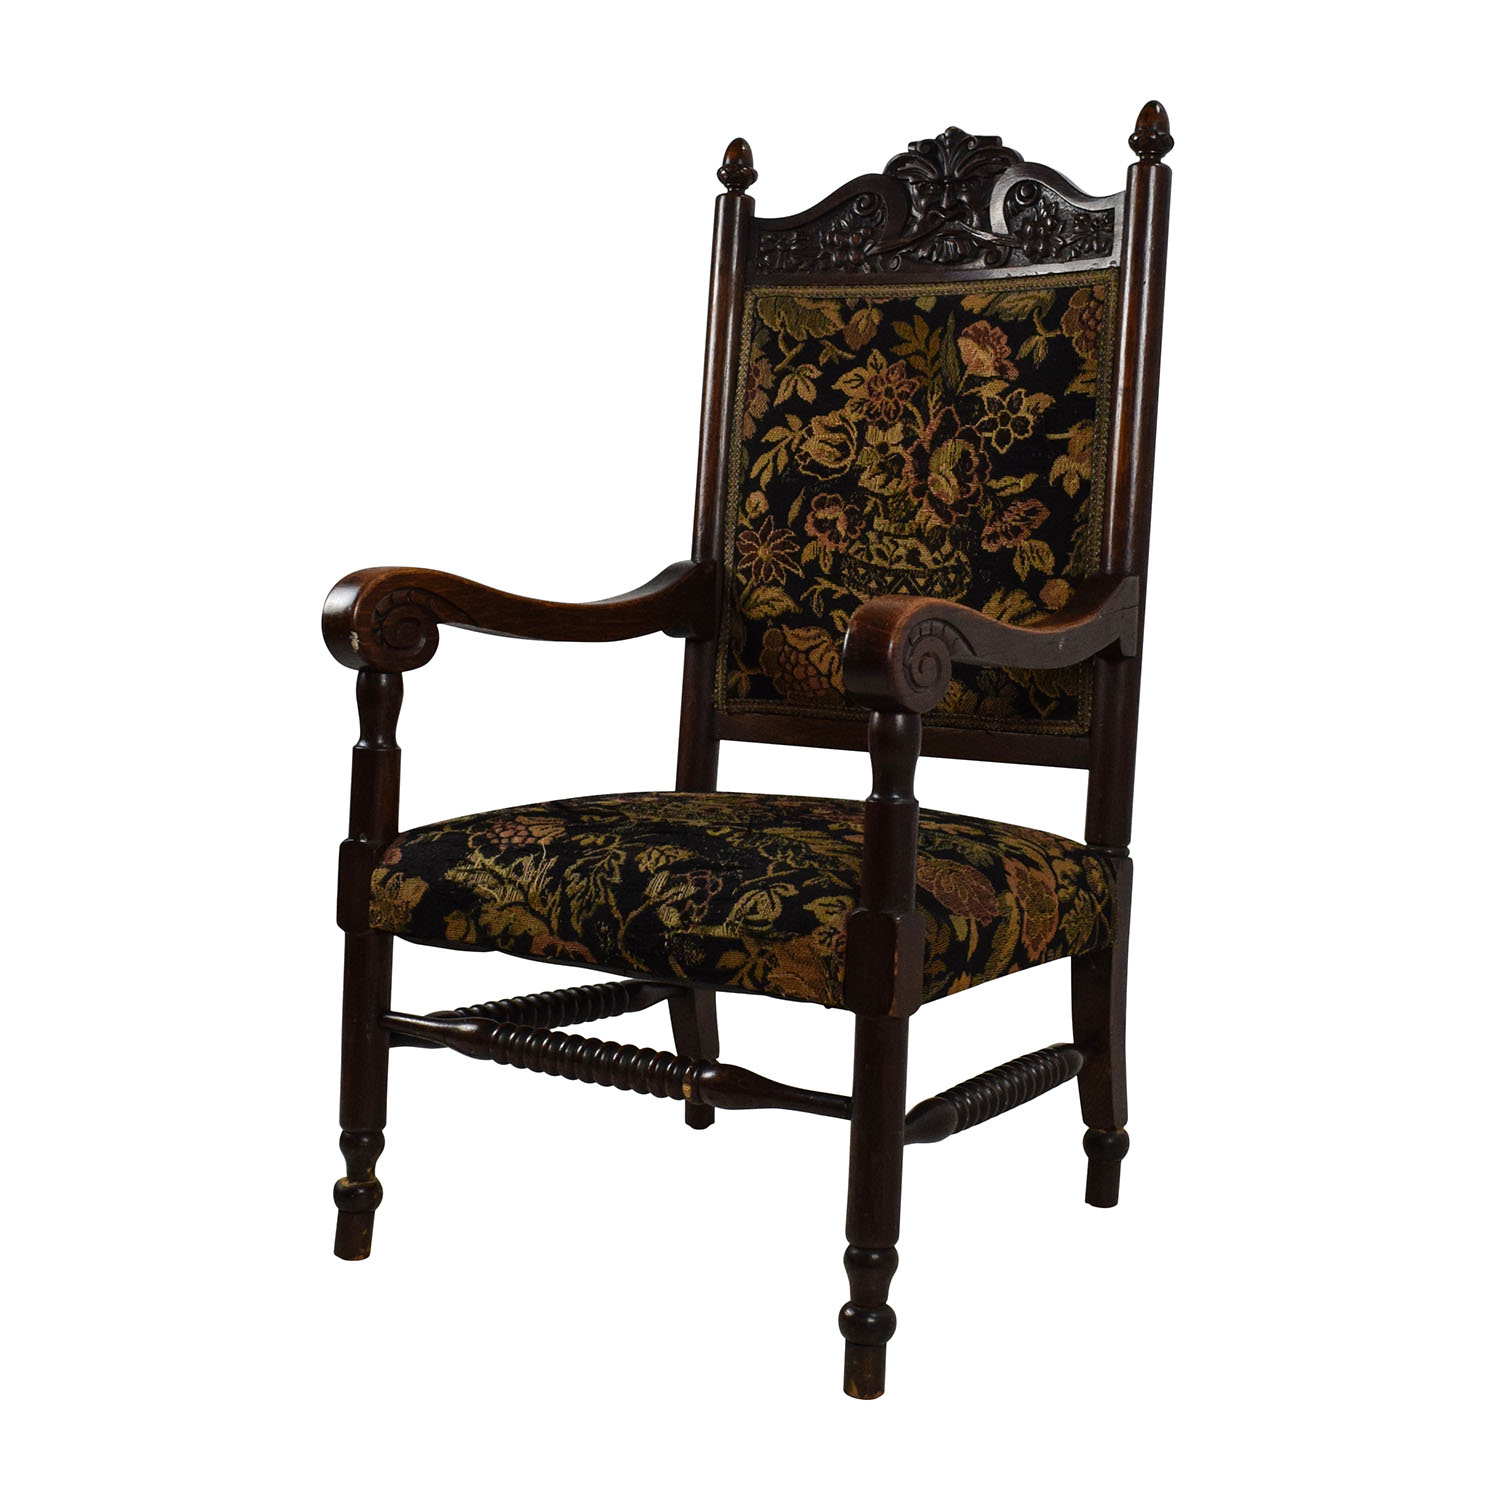 84 off antique tudor upholstered chair chairs for Tudor furnishings